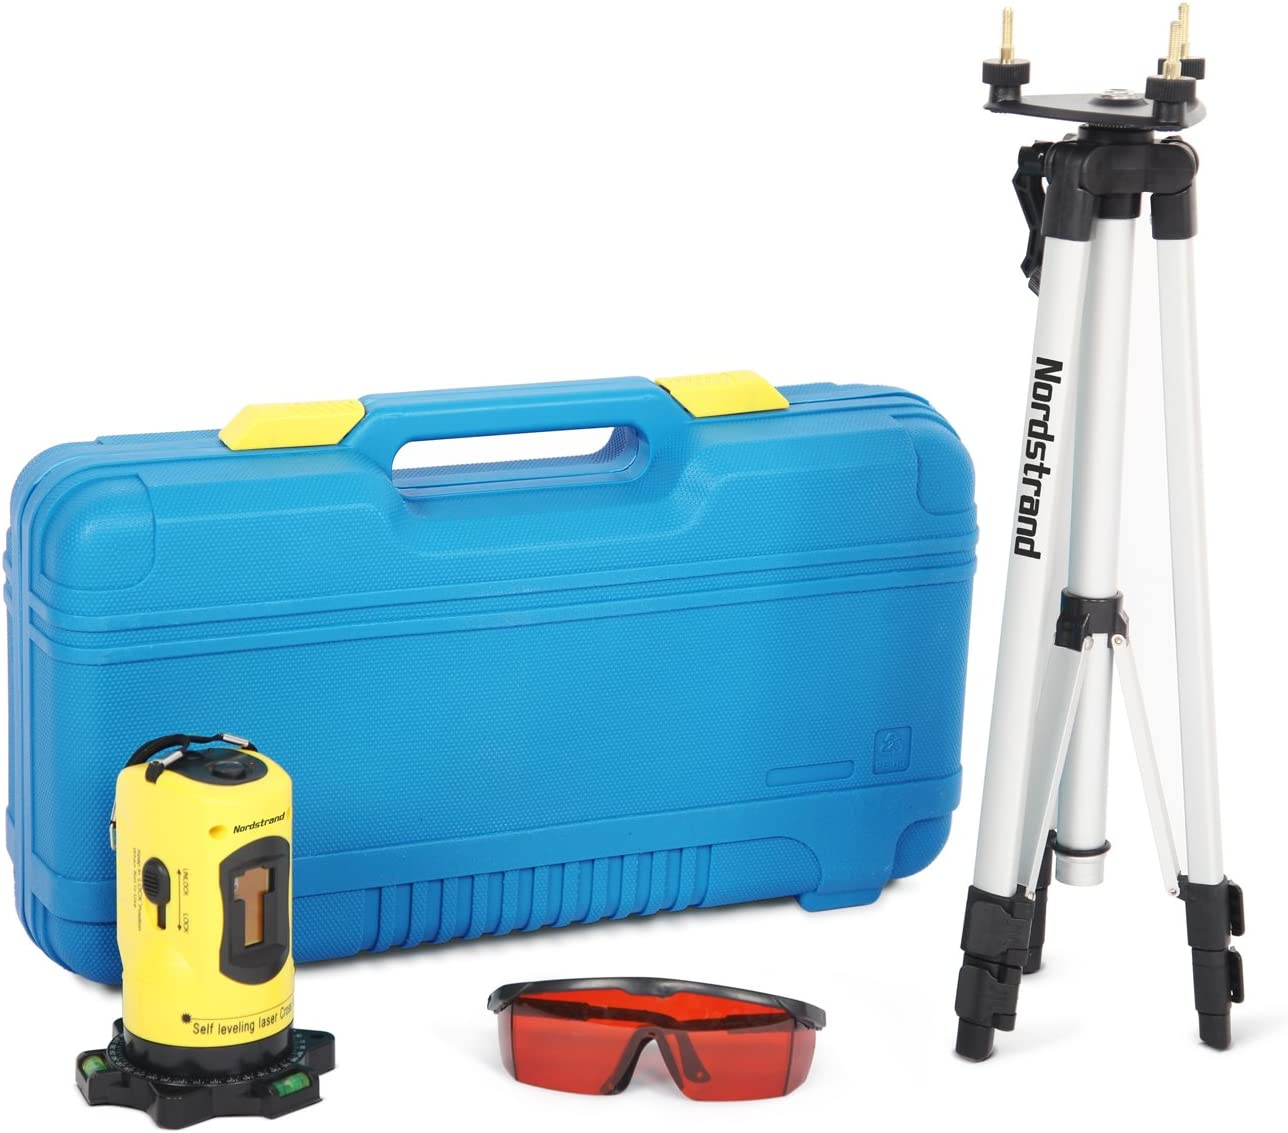 Nordstrand CL01 Automatic Self Levelling Cross Line Laser Level - Tripod and Accessories